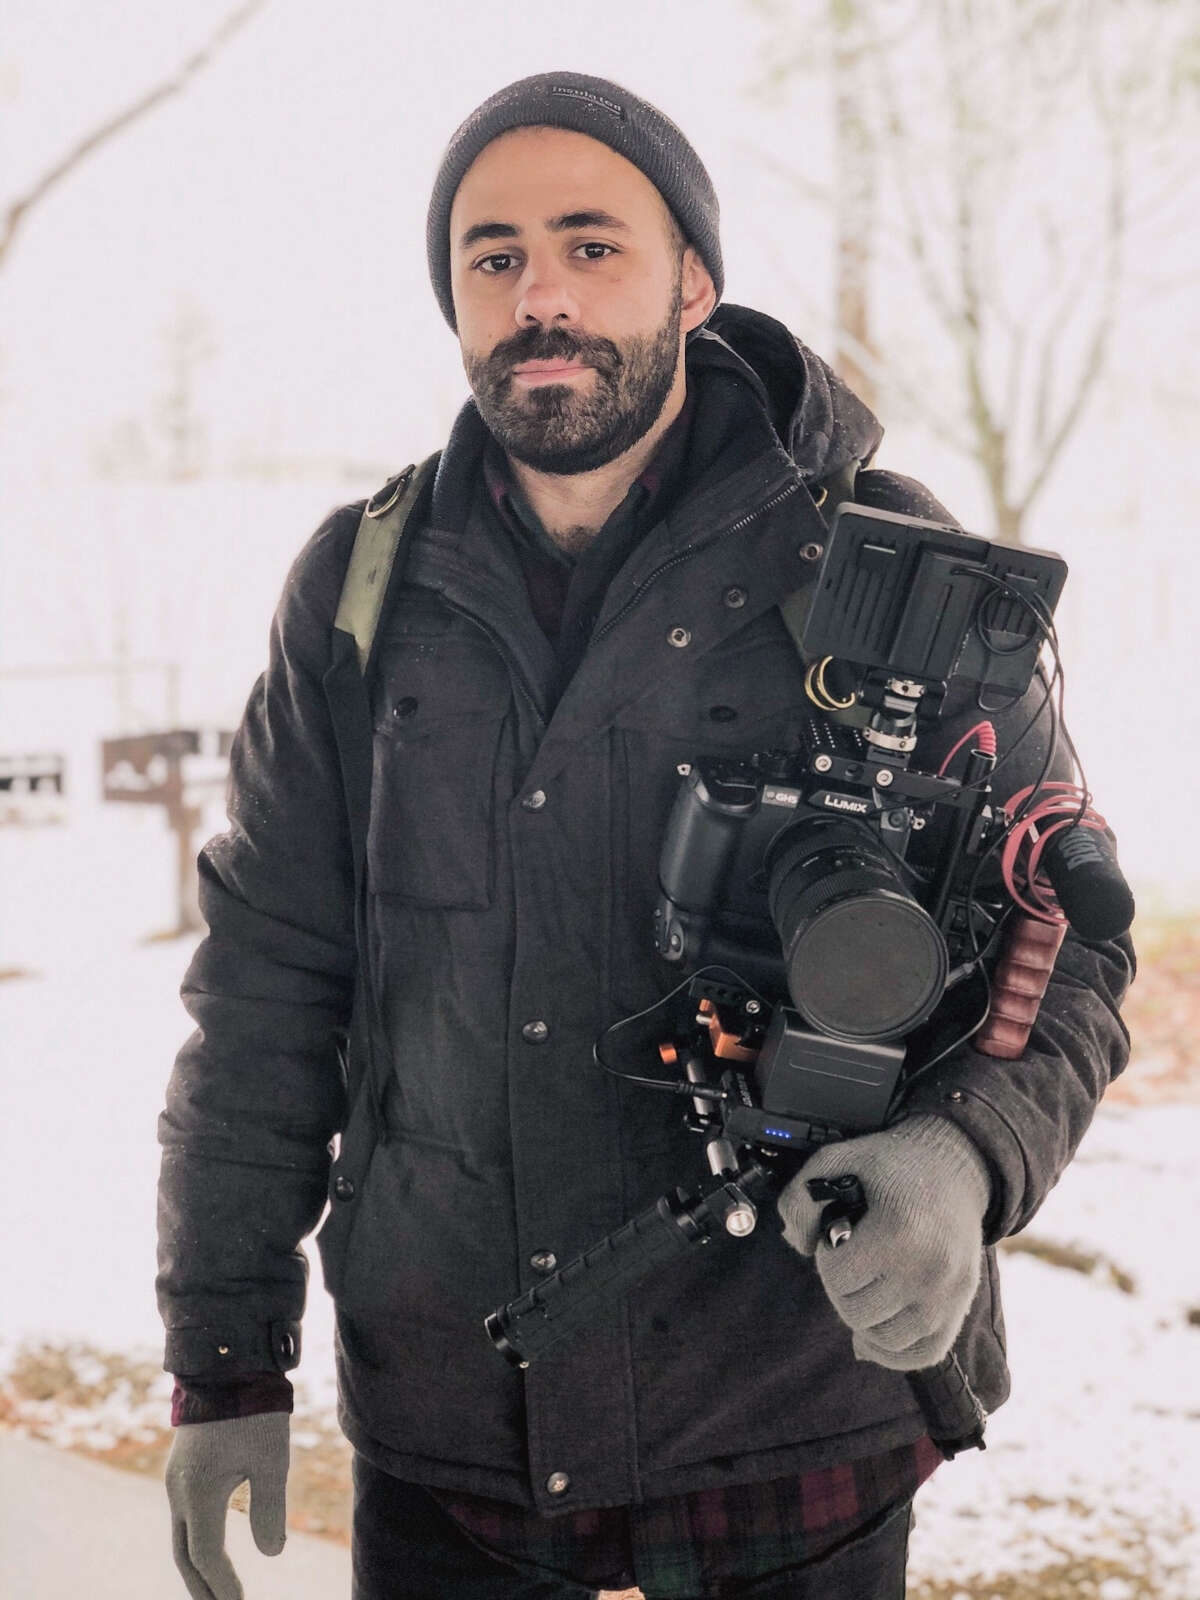 Berkshires-based documentarian Joe Aidonidis is one of six artists selected for the pilot program of Artists at Work, which pays artists for six months and pairs them with cultural institutions and social-impact organizations.